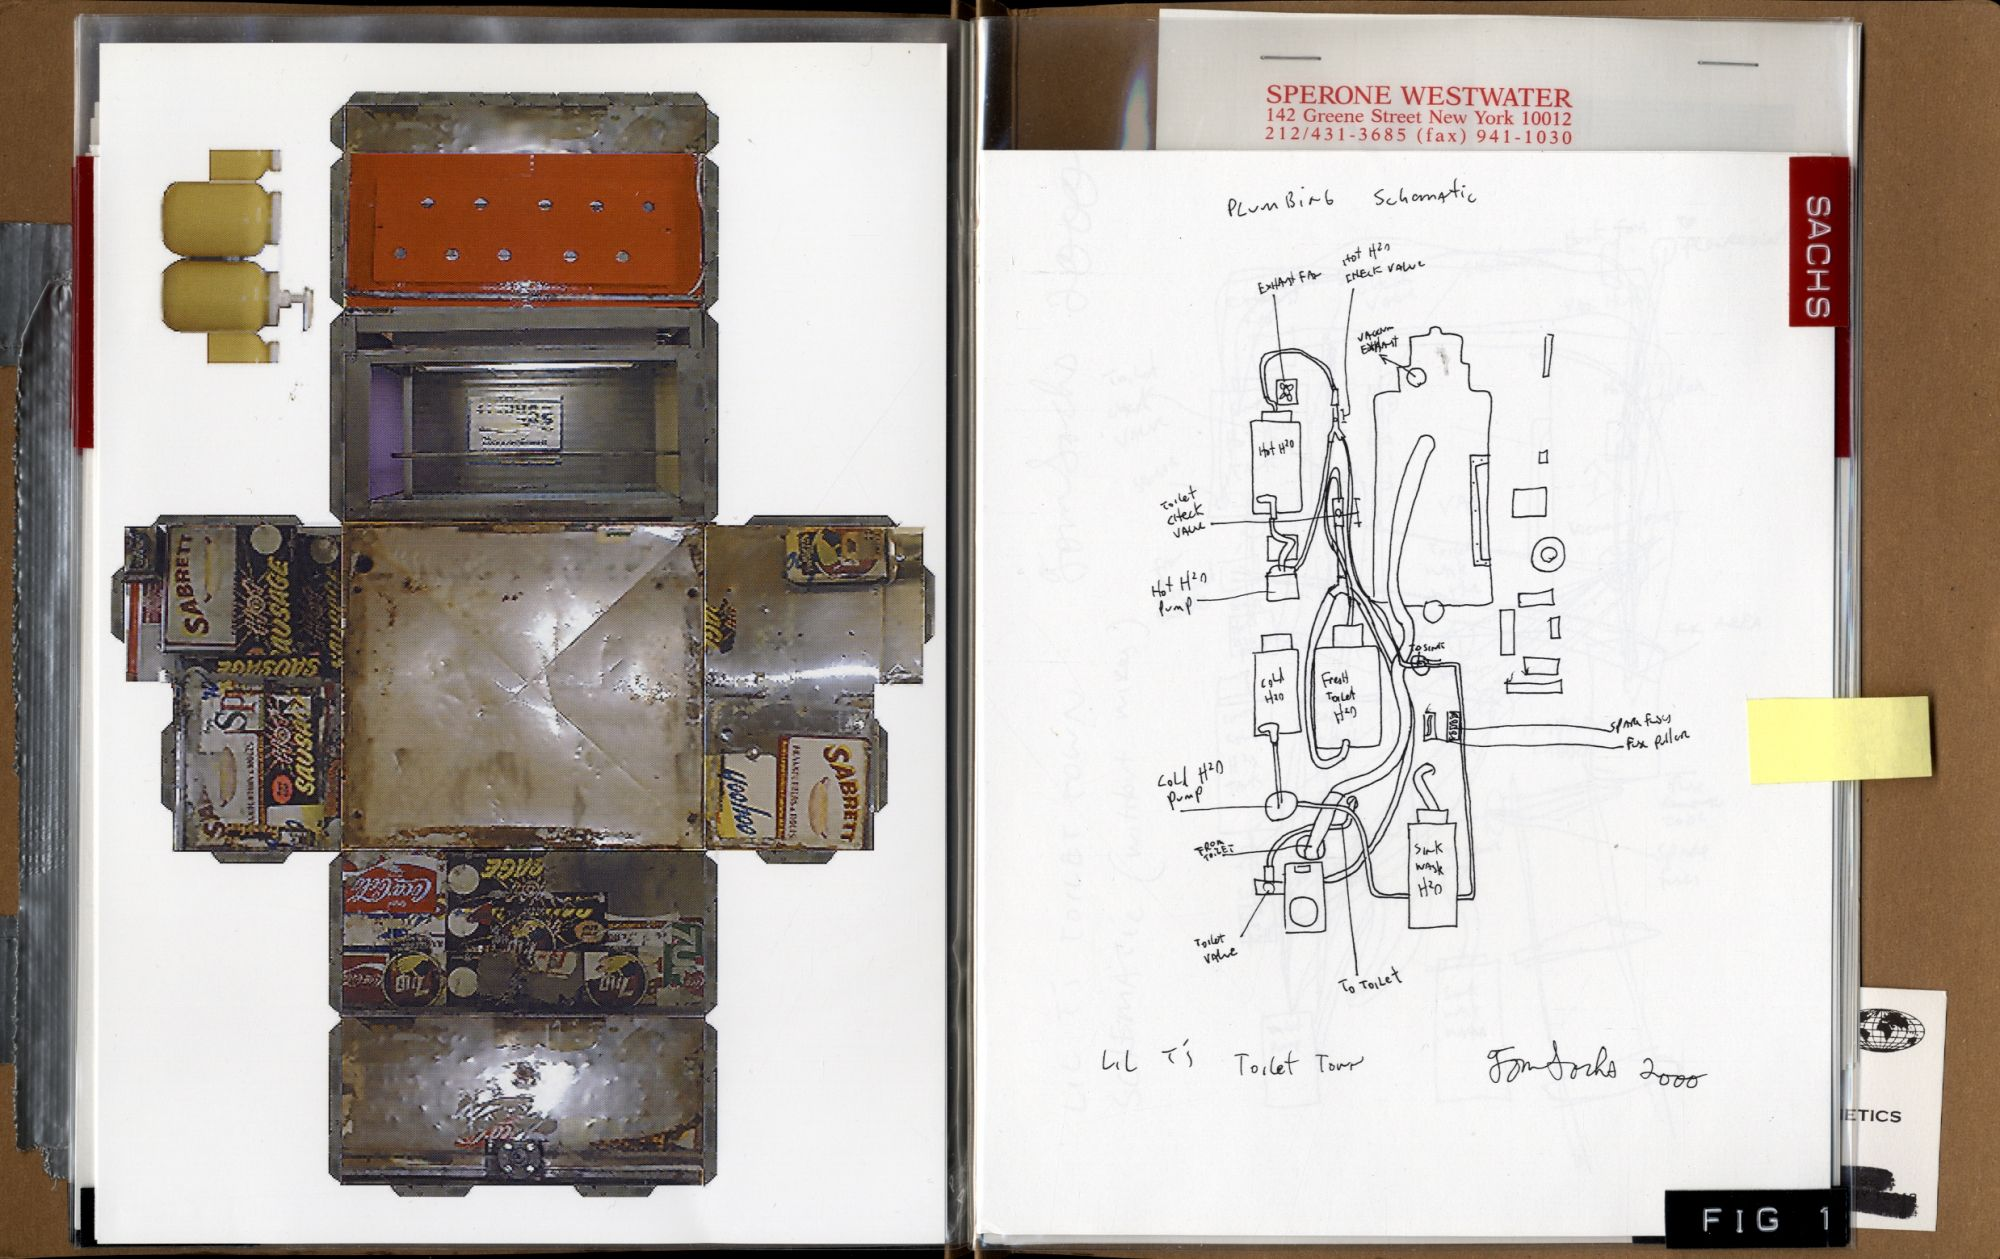 American Bricolage, Limited Edition [SIGNED by Tom Sachs, Todd Alden and Wim Delvoye]